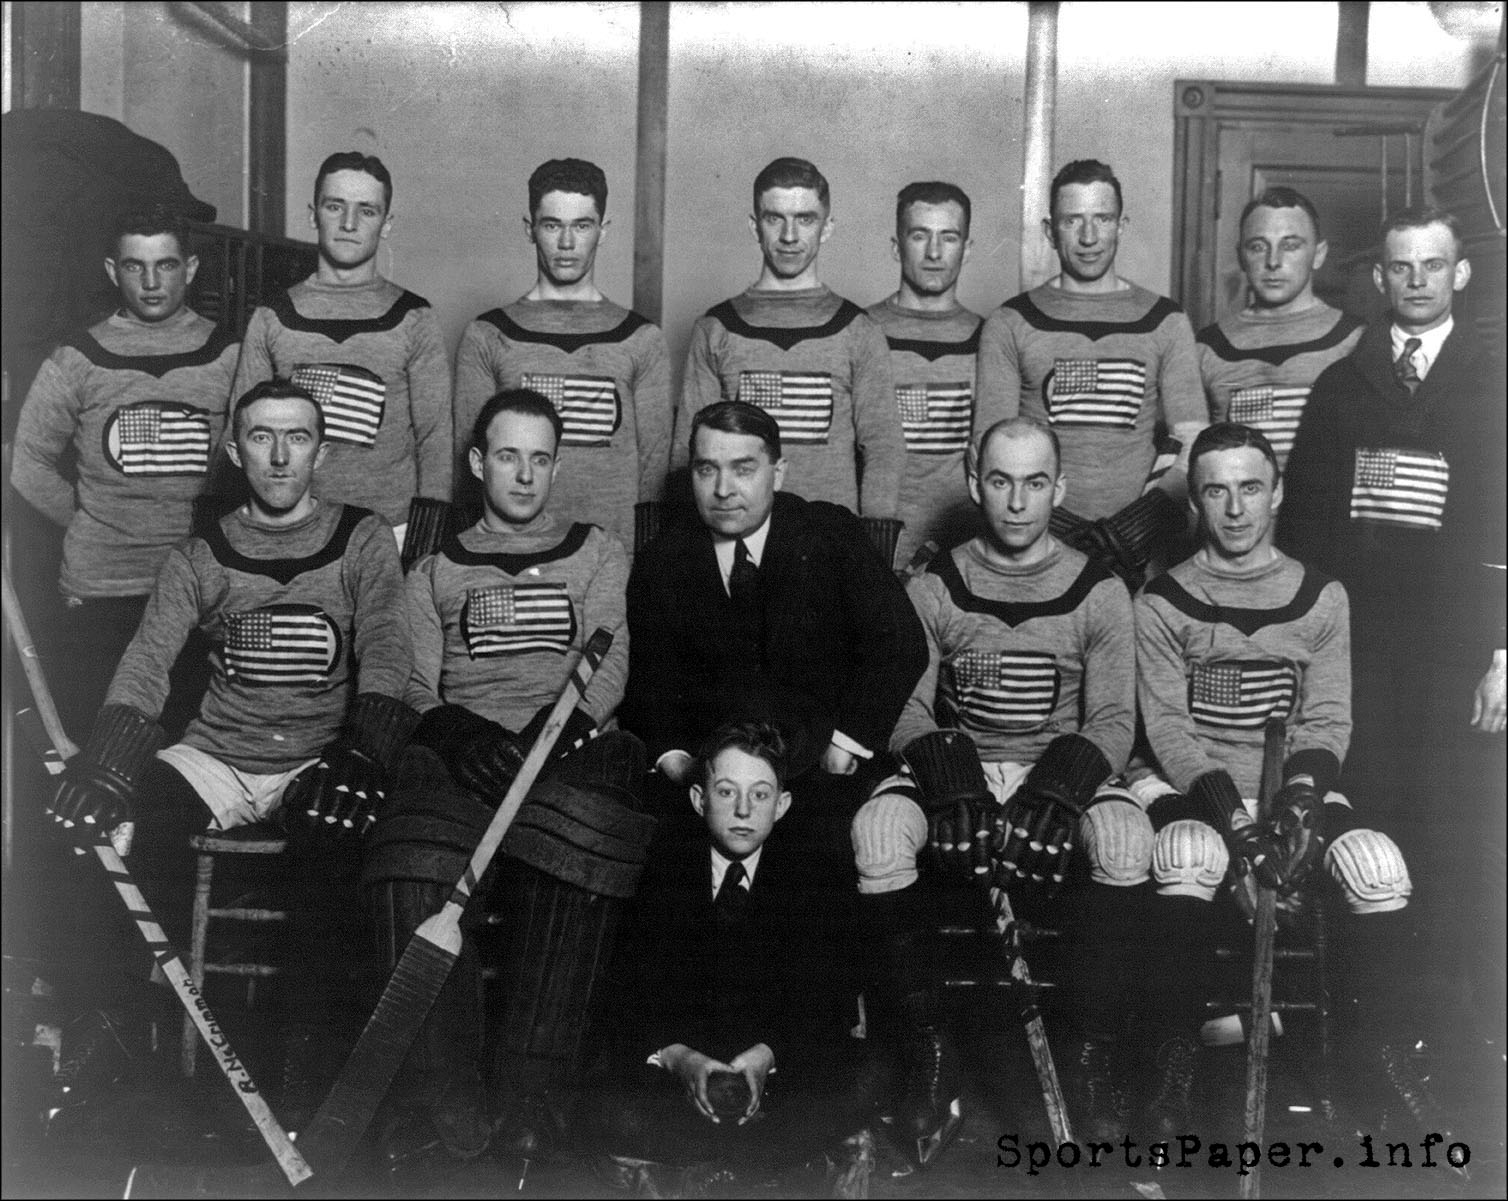 1920 U.S. Olympic Hockey Team